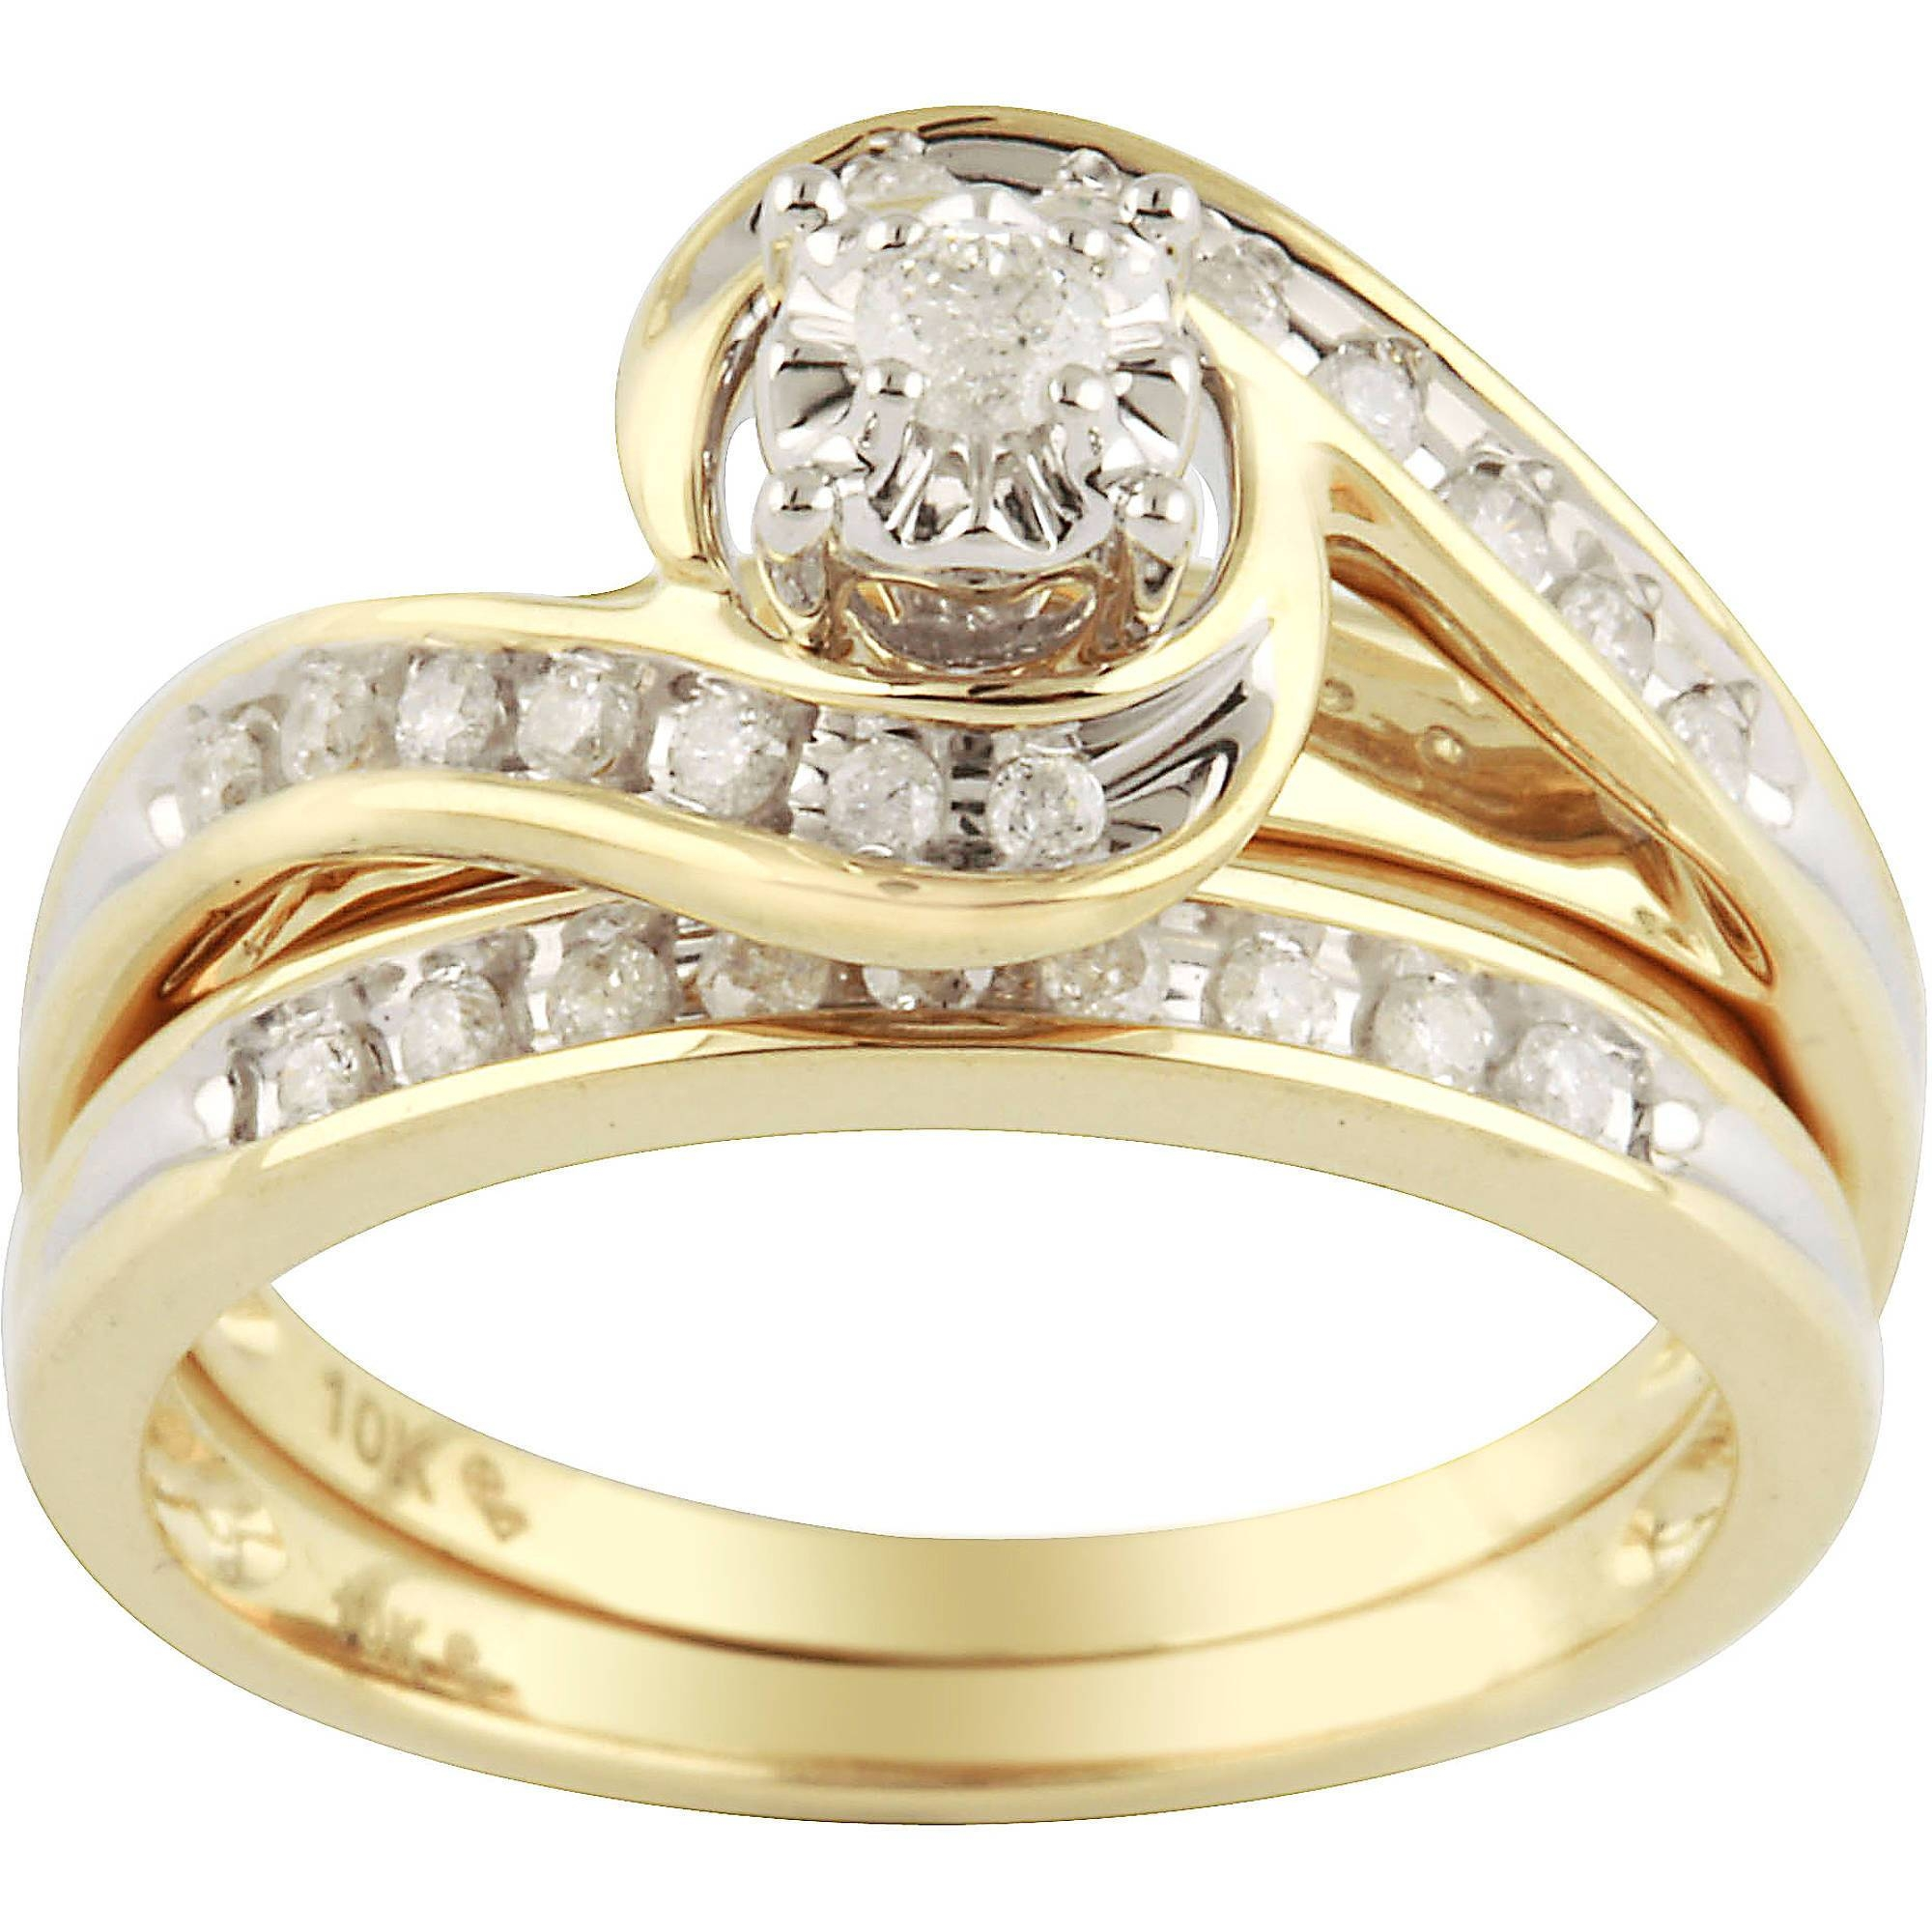 1/3 Carat Diamond Yellow Gold Bypass Bridal Ring Set – Walmart For Gold Engagement And Wedding Rings Sets (View 12 of 15)